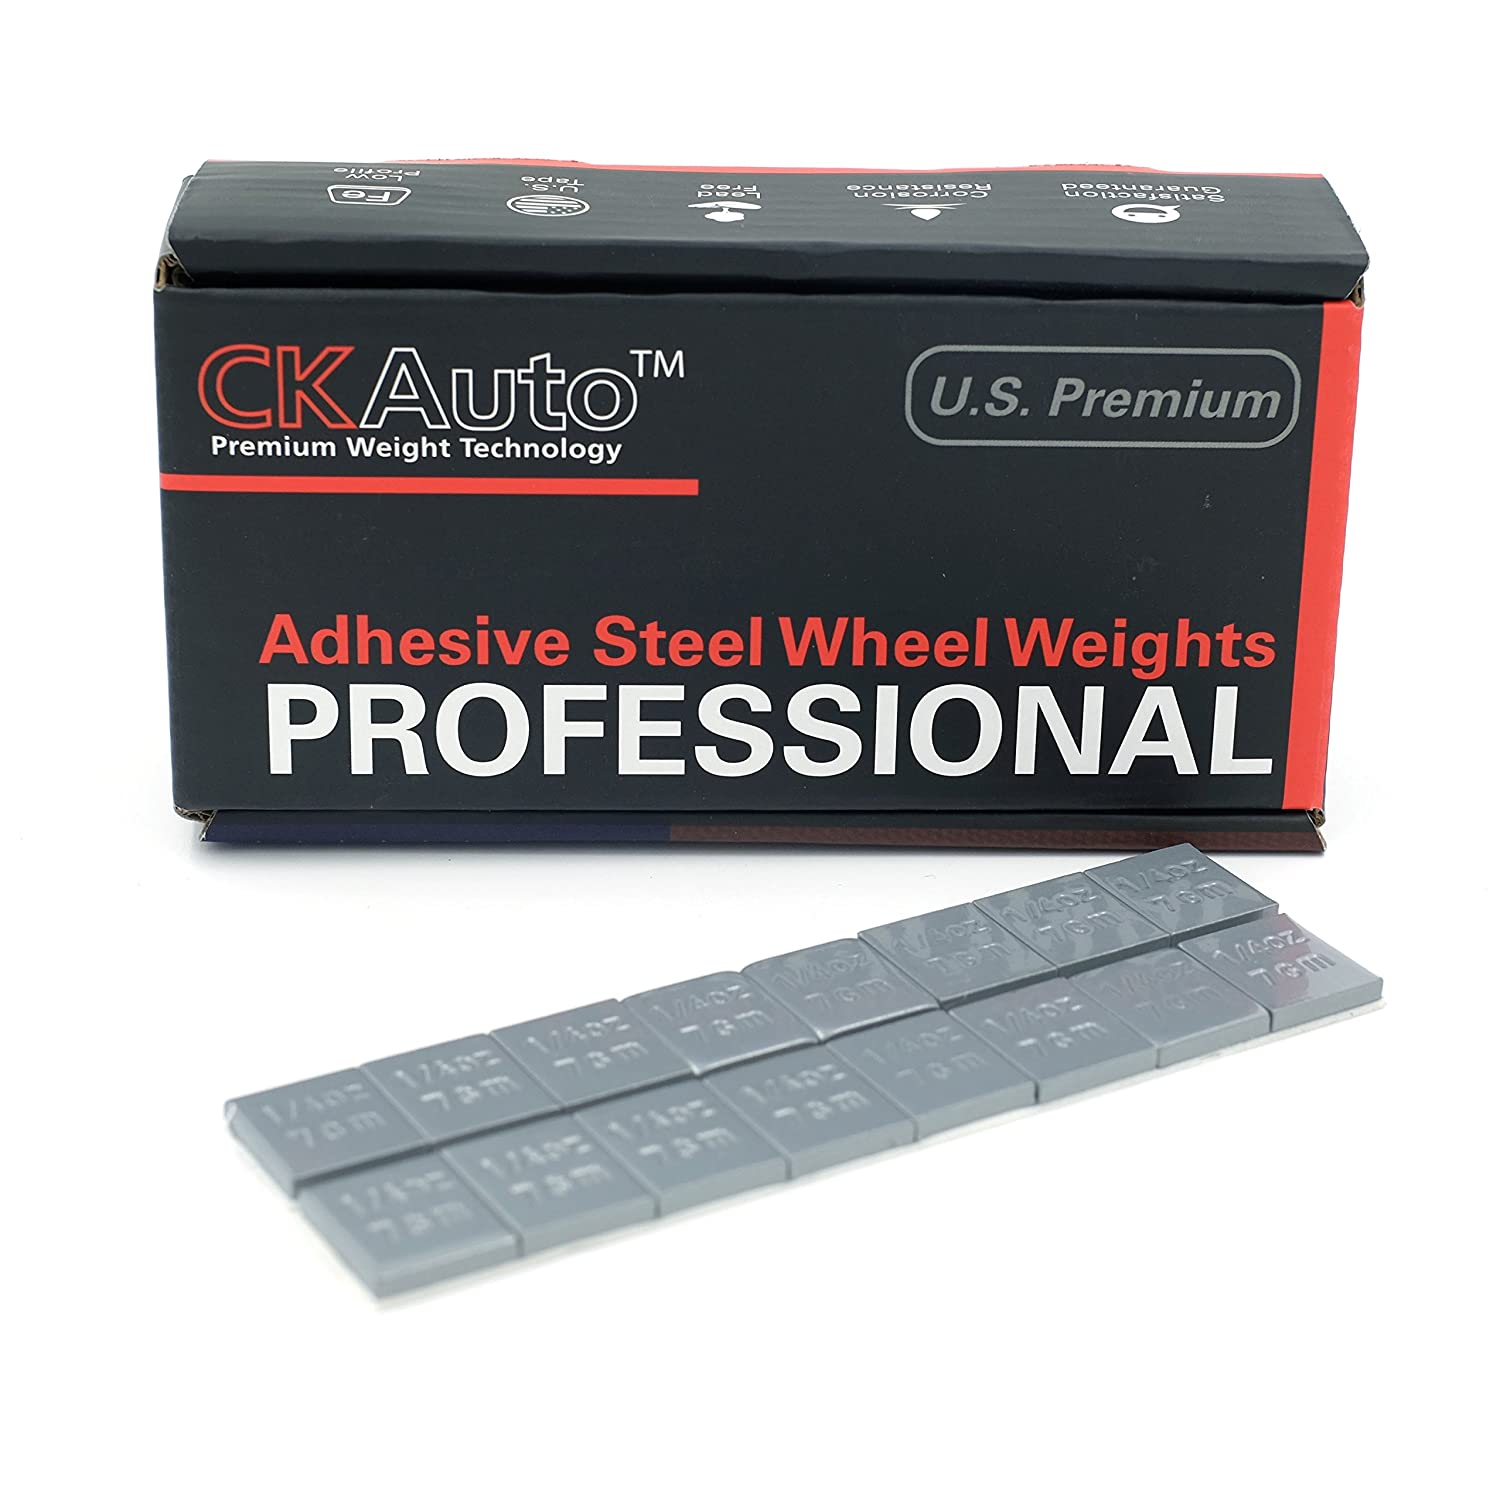 1/4oz,0.25oz,Grey,Adhesive Stick on Wheel Weights,GM, Ford,Chrysler, Low Profile,Wheel Balance Weights, 60 oz/box, 1.7 kg/box, 3.75 lb/box CK Auto